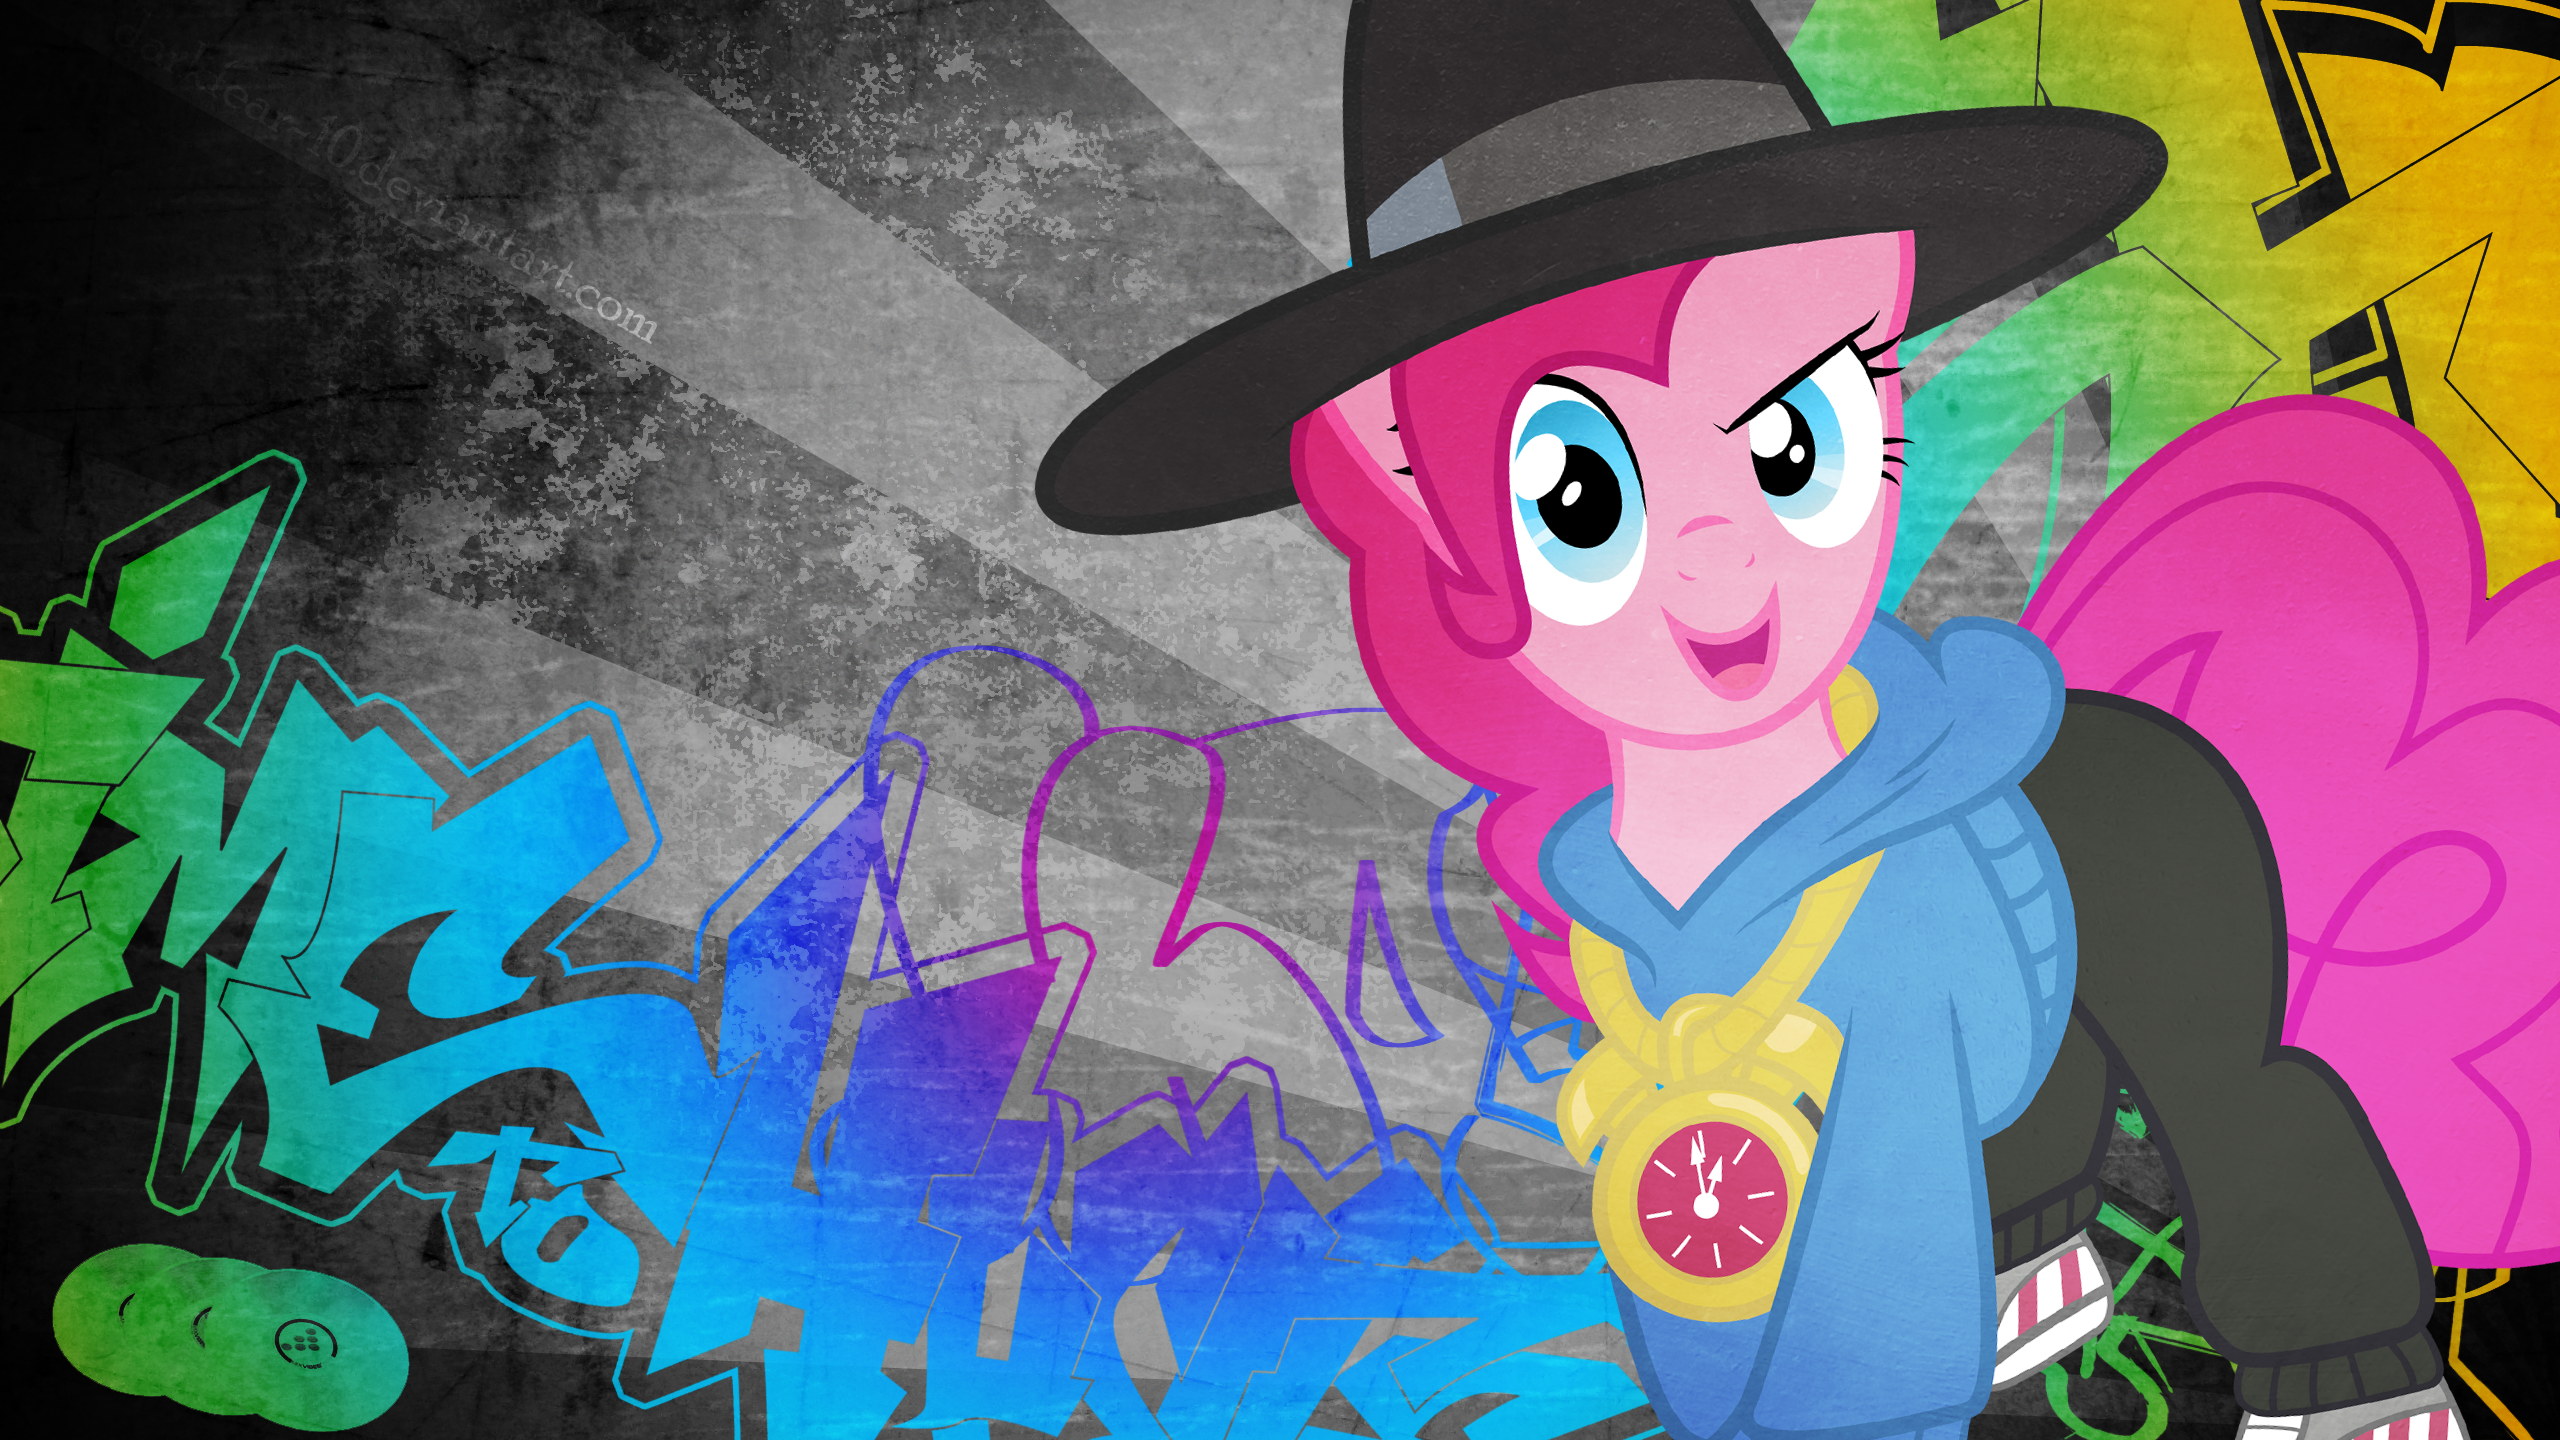 http://derpicdn.net/img/view/2014/4/6/594490__safe_solo_pinkie+pie_wallpaper_testing+testing+1-dash-2-dash-3_spoiler-colon-s04e21_graffiti_rap_run+p-dot-i-dot-e-dot-_rapper+pie.png